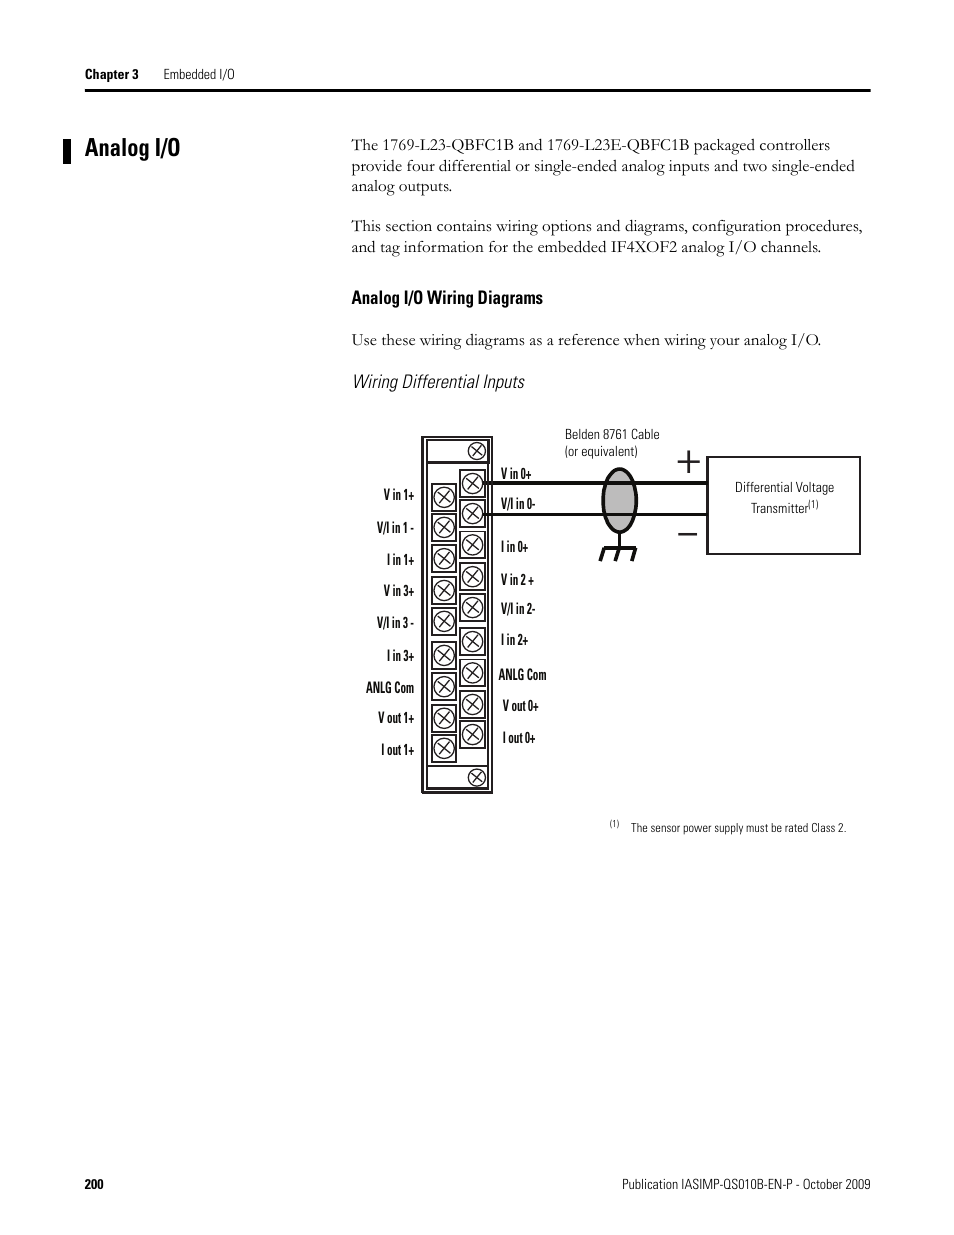 rockwell automation 1769 l23e qb1b_l23e qbfc1b_l23 qbfc1b compactlogix packaged controllers quick start and user manual page200 analog i o, analog i o wiring diagrams rockwell automation 1769  at aneh.co